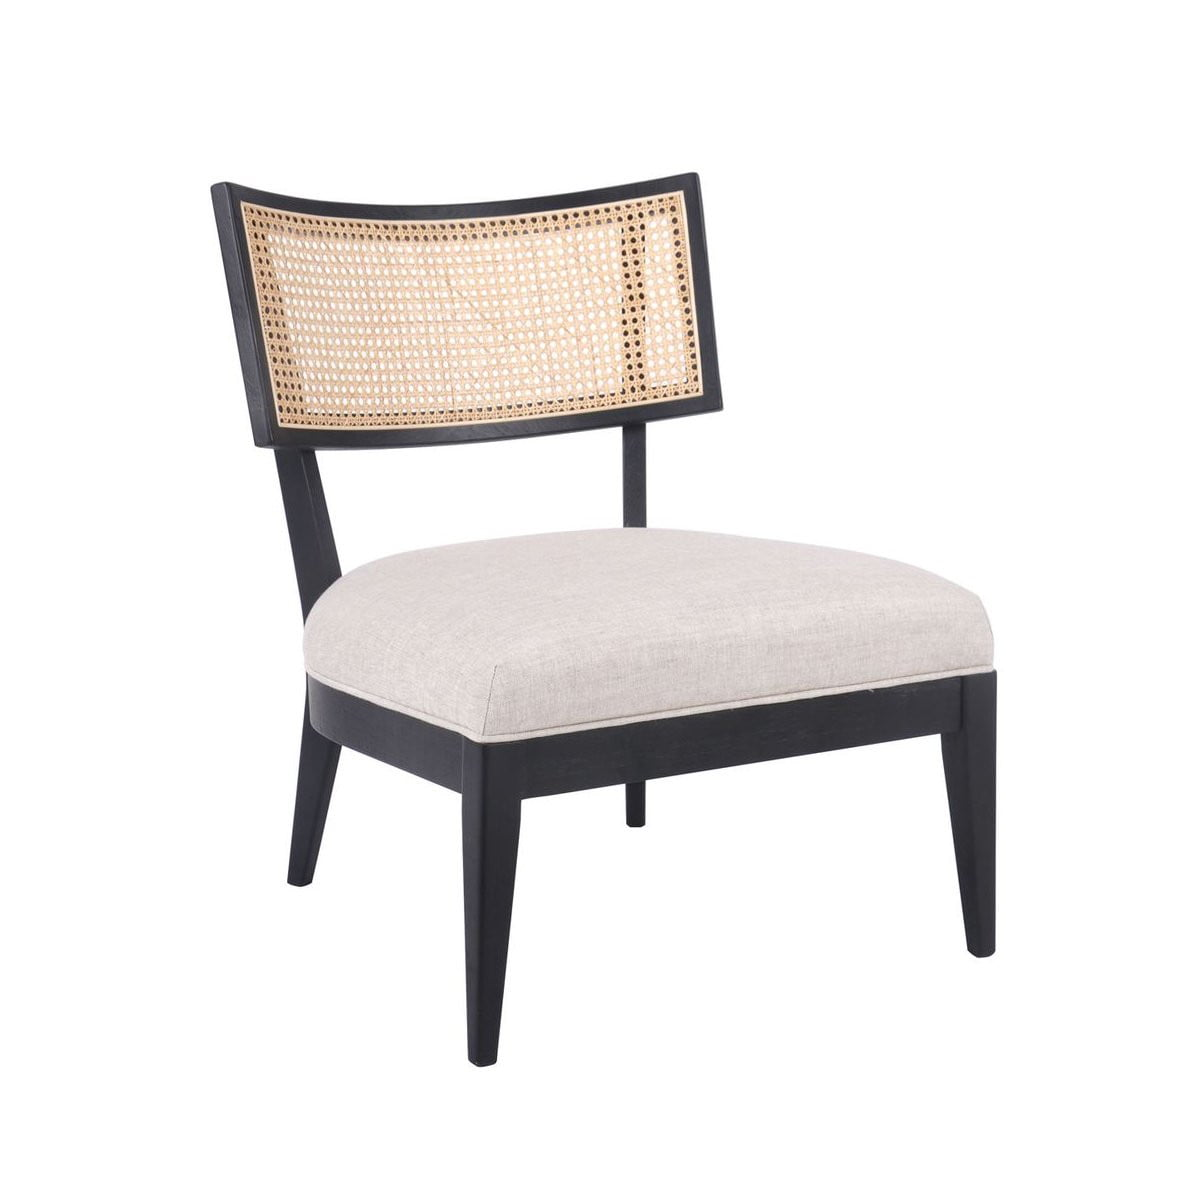 Darcy Rattan Occassional Chair Natural | Attica House Luxury Furniture